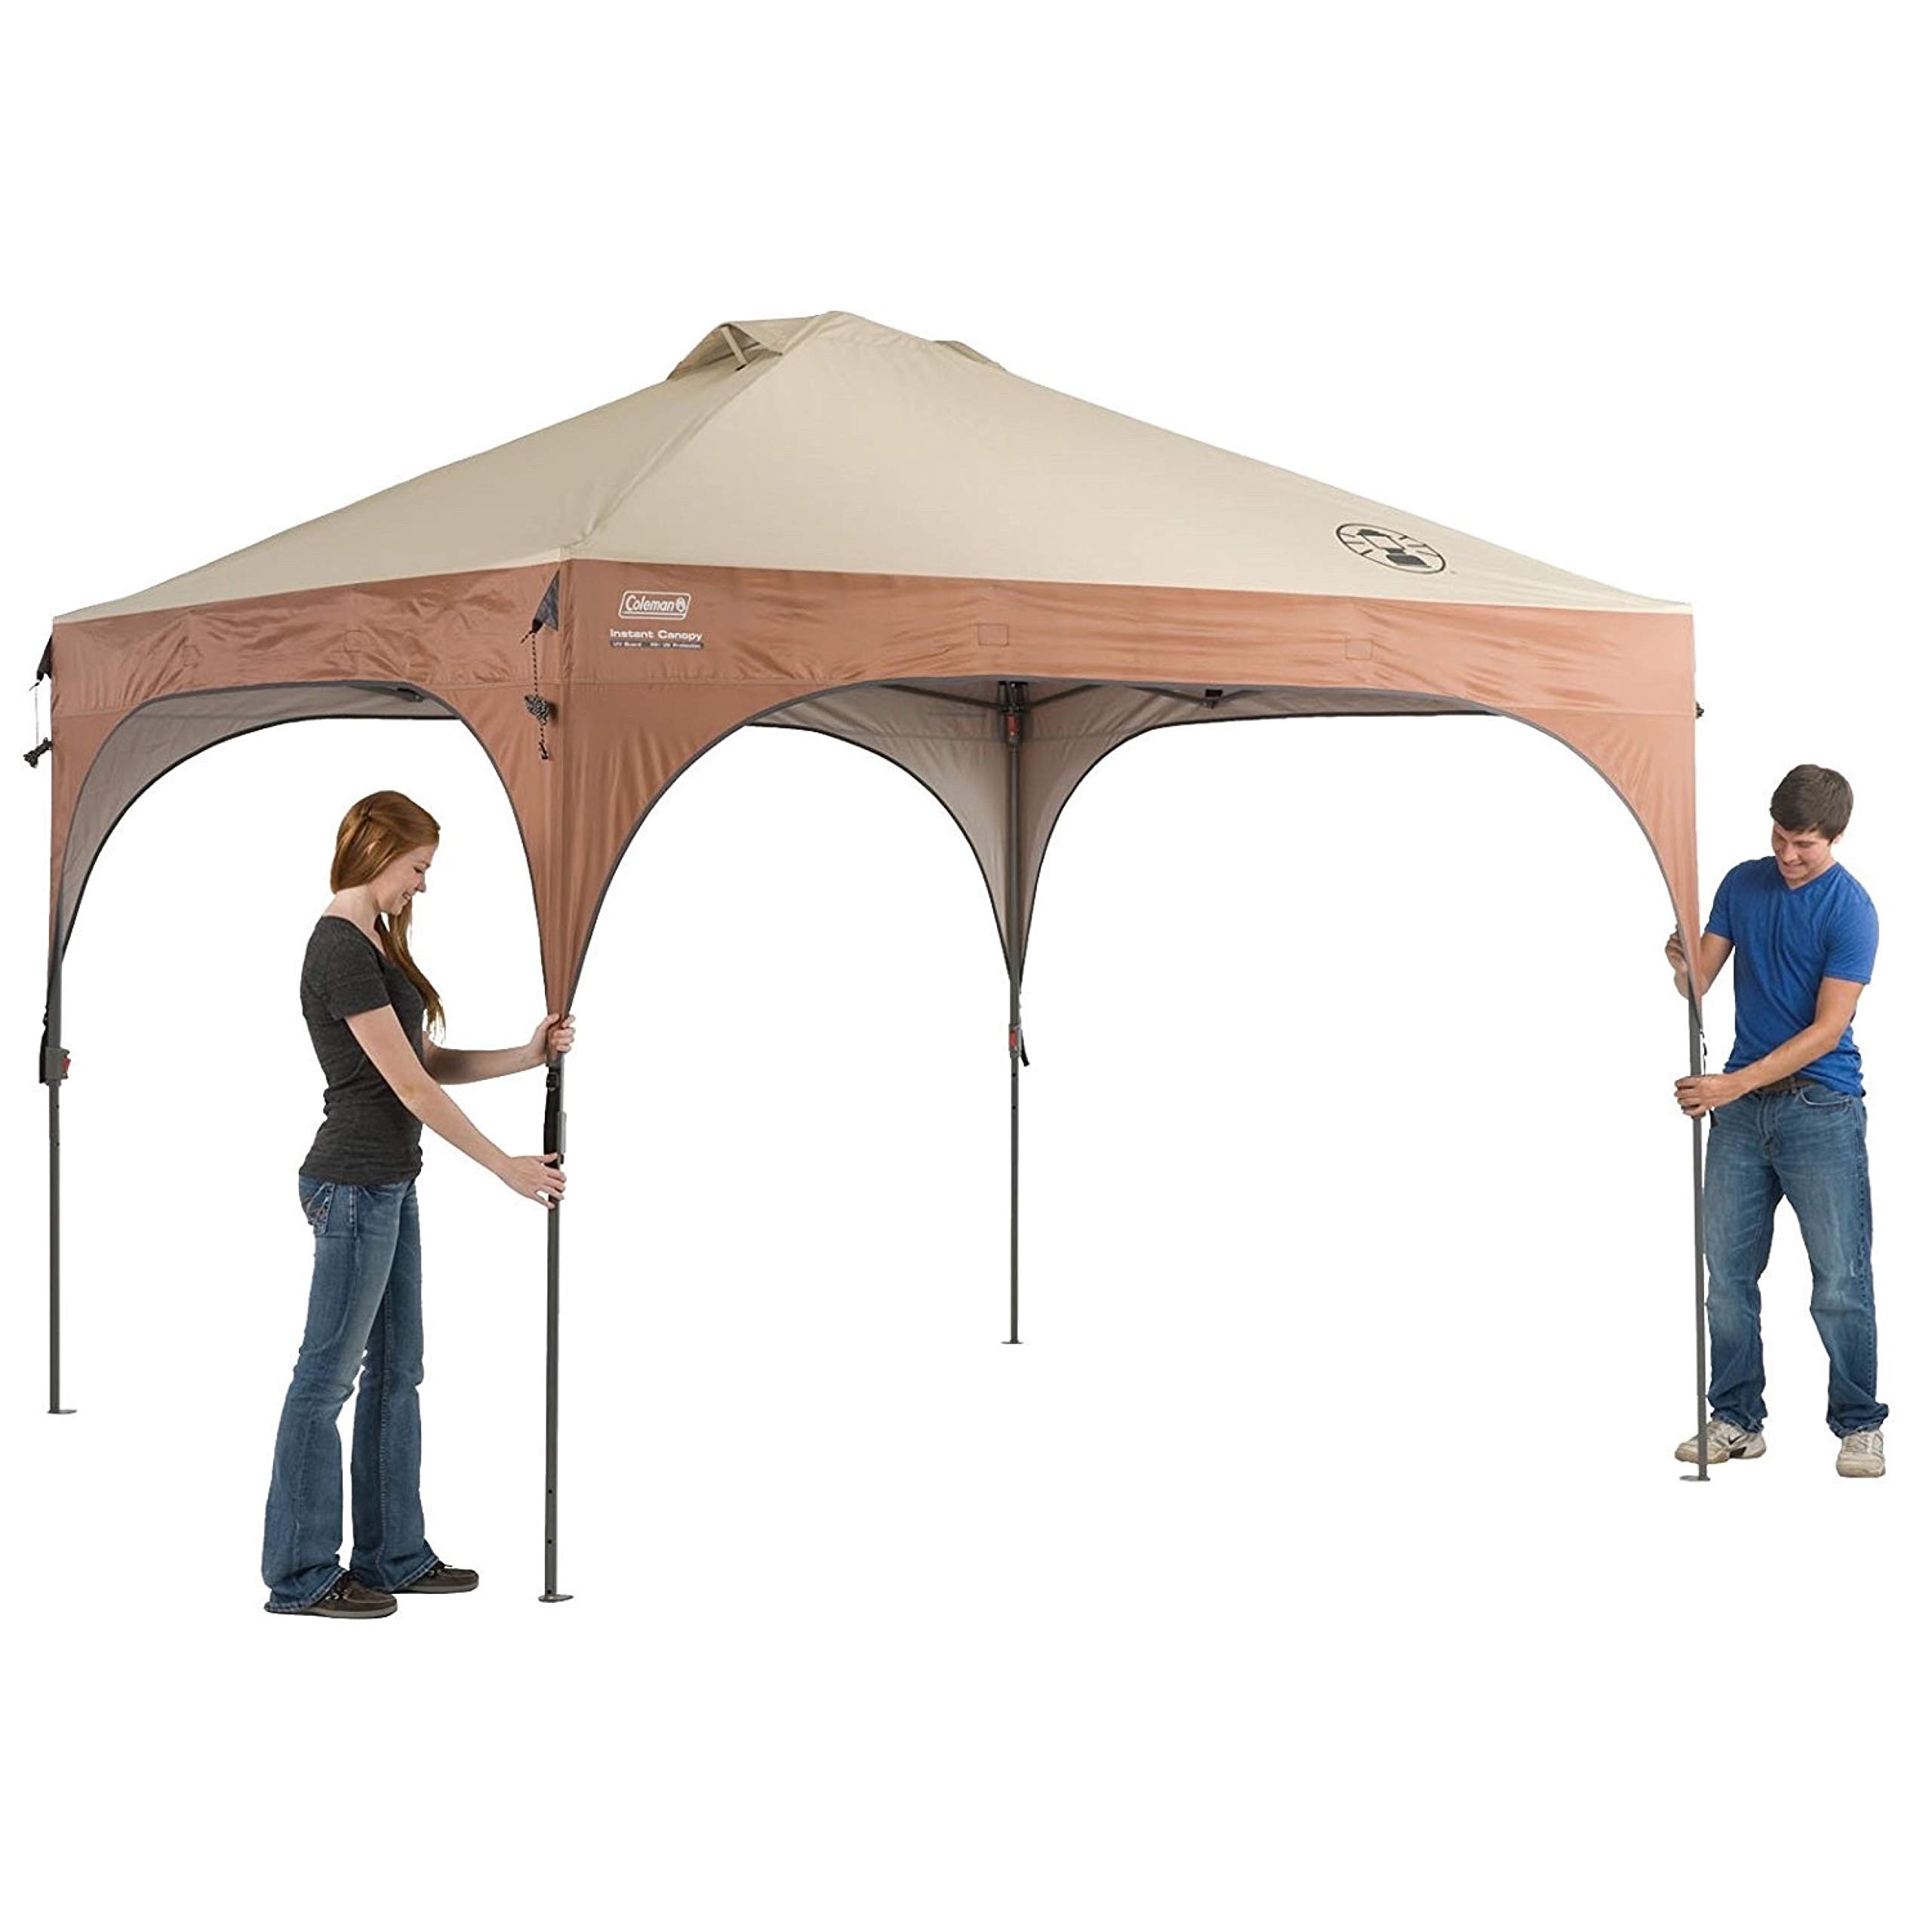 Coleman Instant Pop-Up Canopy Tent and Sun Shelter with LED Lighting, 10 x 10 Feet by Coleman (Image #6)